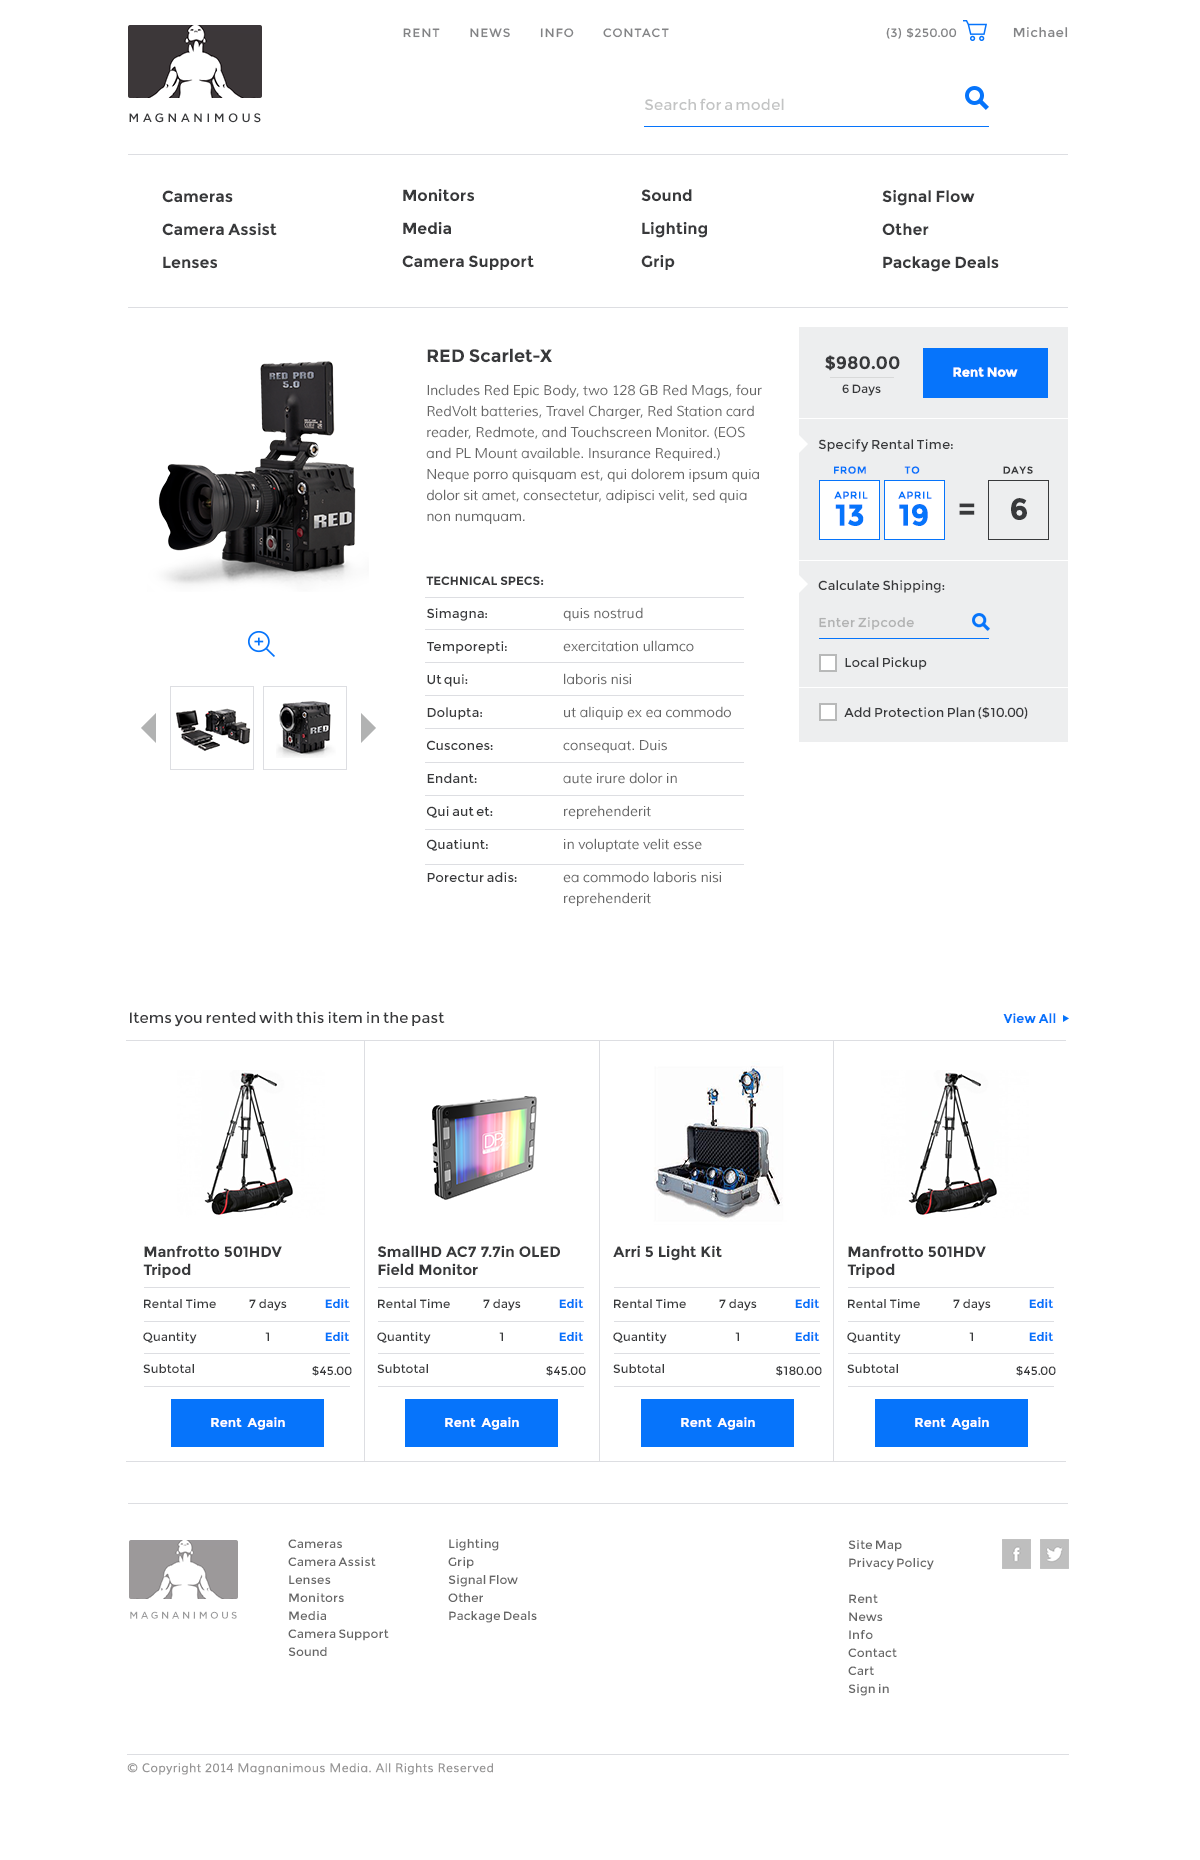 Signed-in-Experience-Product-Page